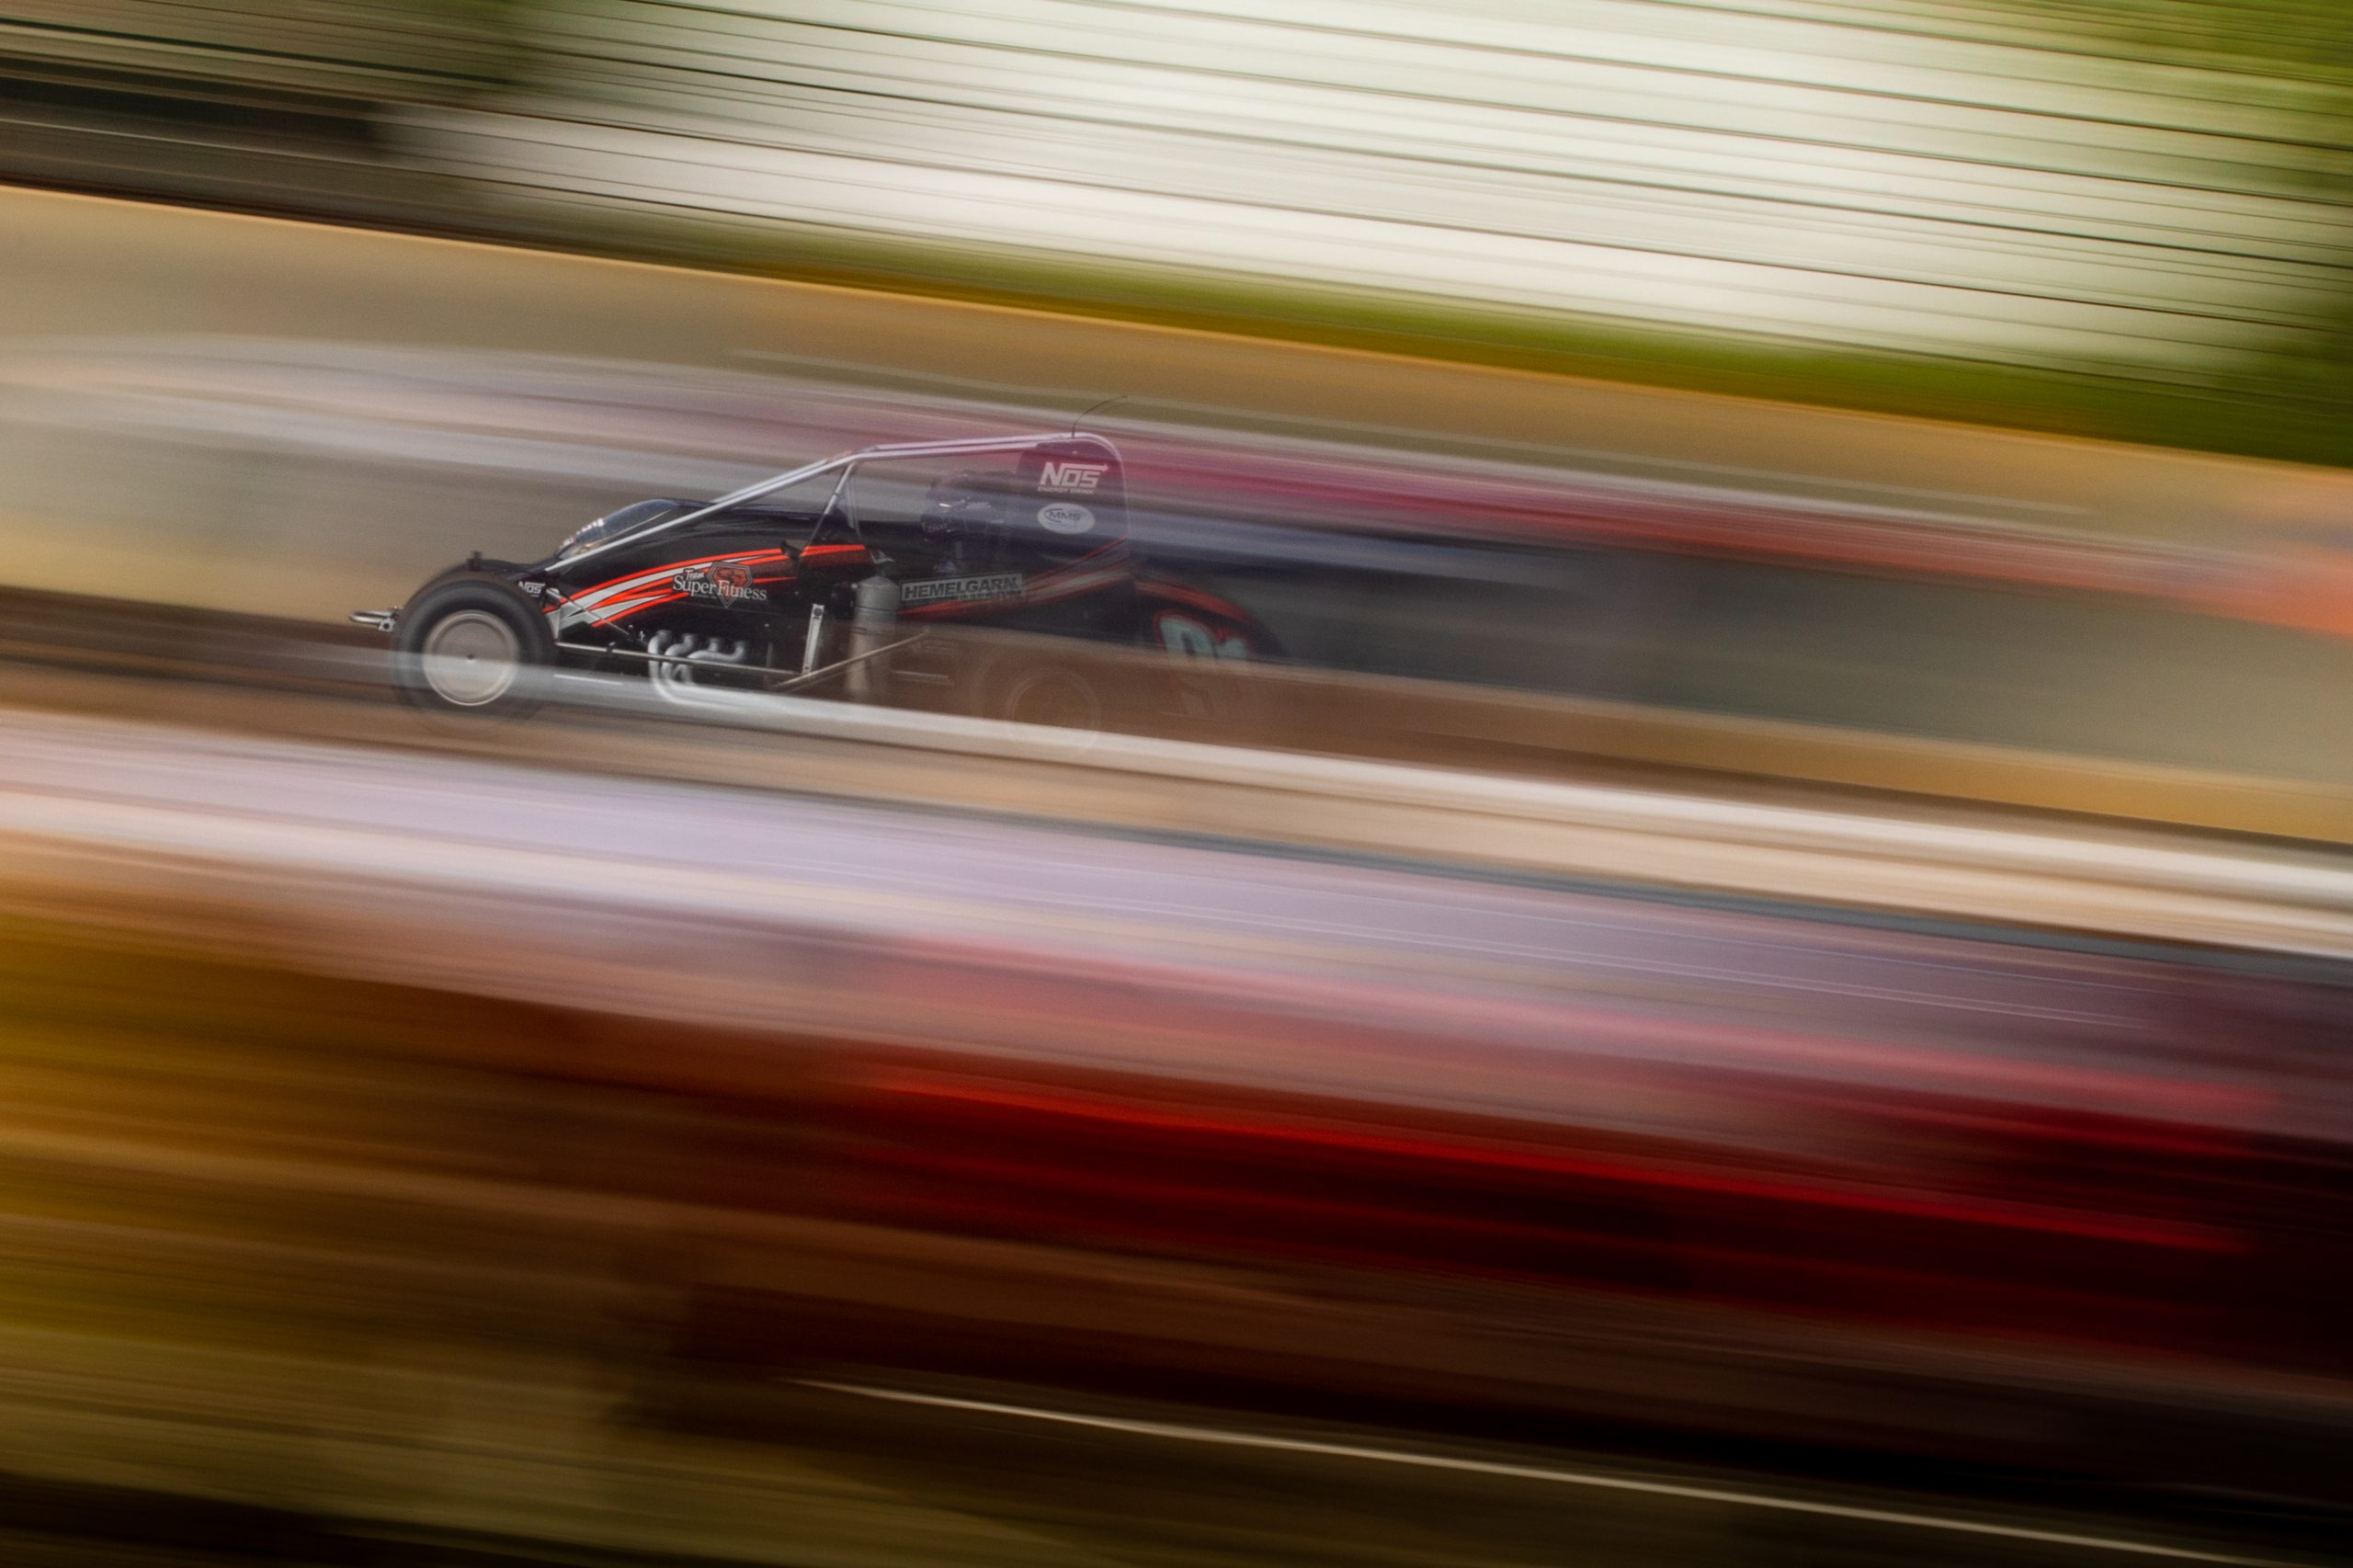 Silver Crown champ car on dirt track dynamic blur speed action